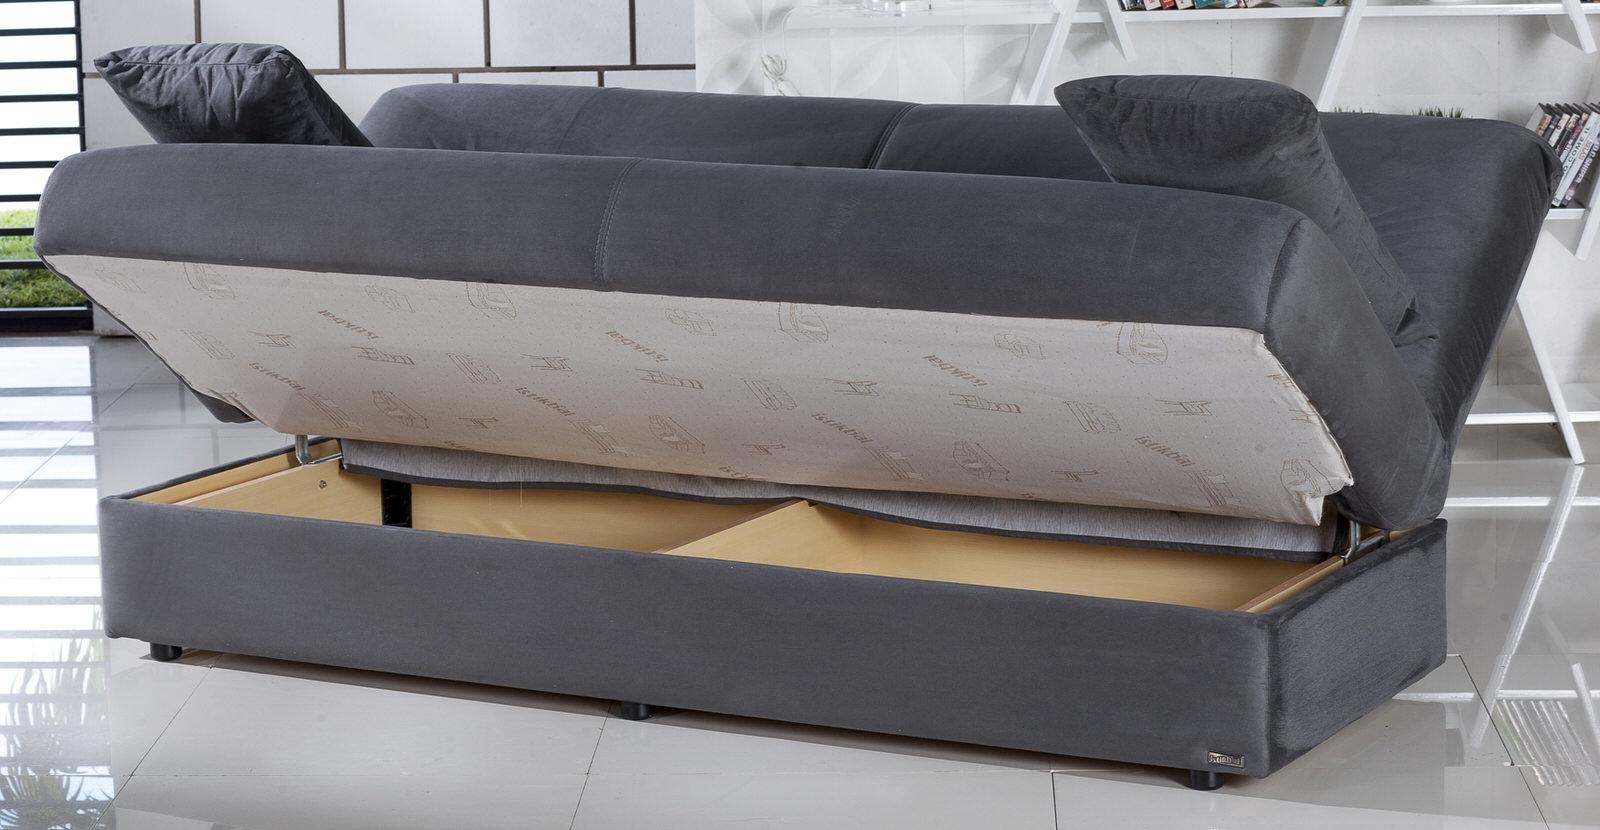 Sofas: Ikea Couch Bed | Target Sofa Bed | Futon Ikea Pertaining To Target Couch Beds (View 9 of 20)